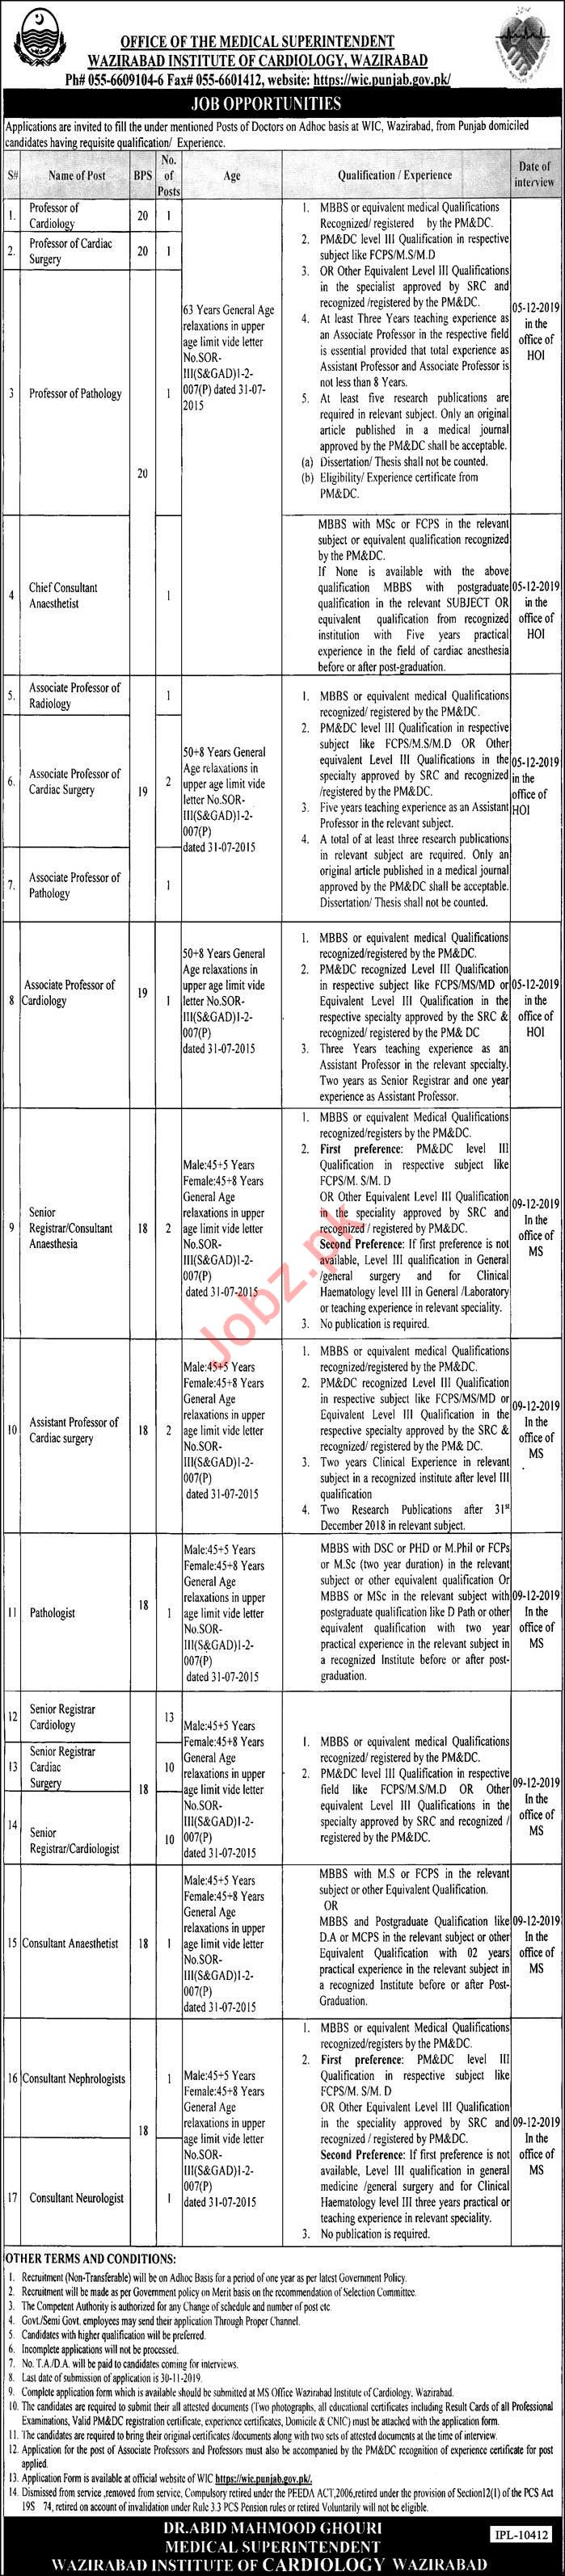 Wazirabad Institute of Cardiology Medical Faculty Jobs 2019